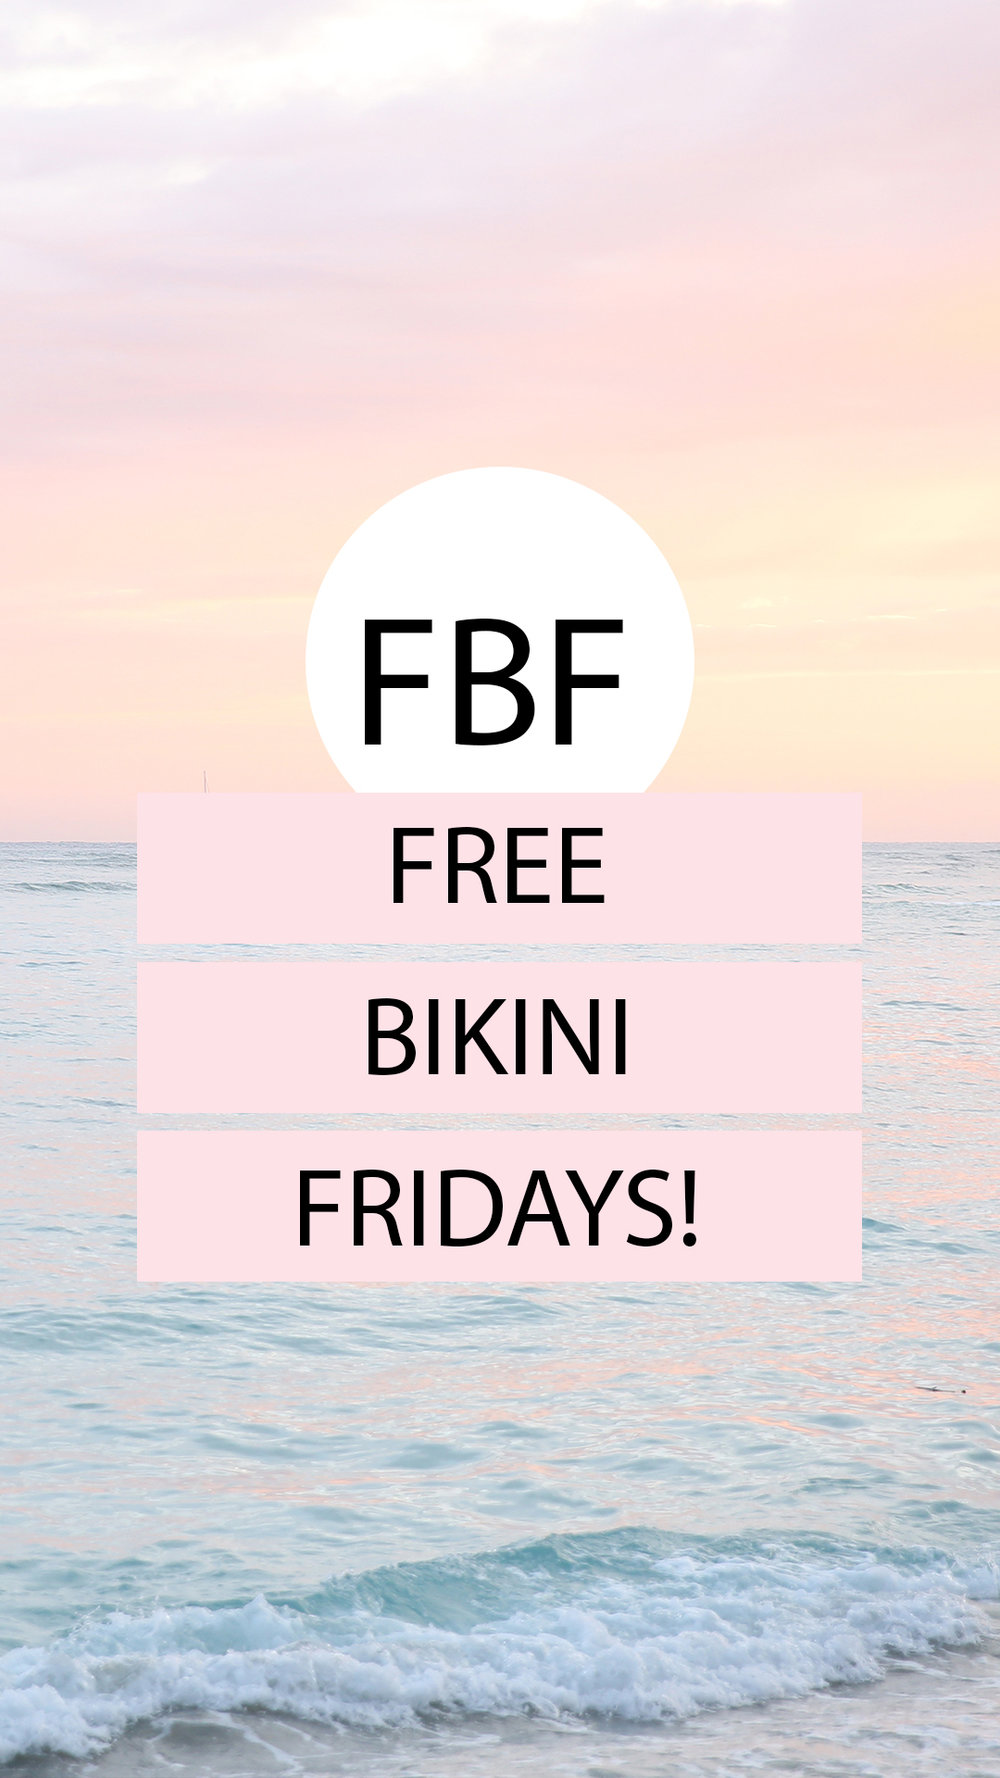 Free Bikini Friday instagram.jpg